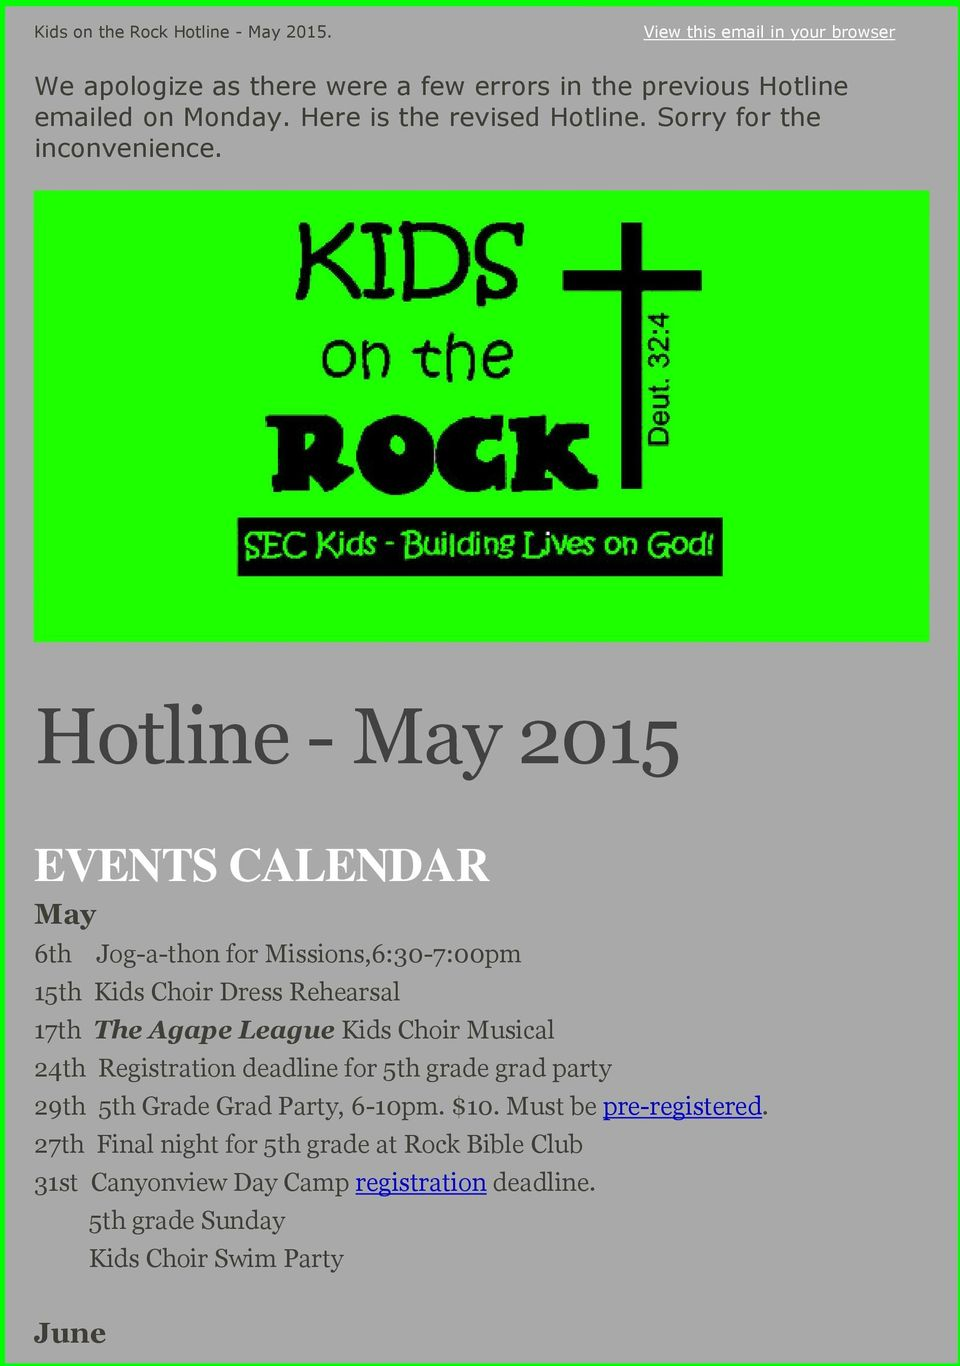 Hotline - May 2015 EVENTS CALENDAR May 6th Jog-a-thon for Missions,6:30-7:00pm 15th Kids Choir Dress Rehearsal 17th The Agape League Kids Choir Musical